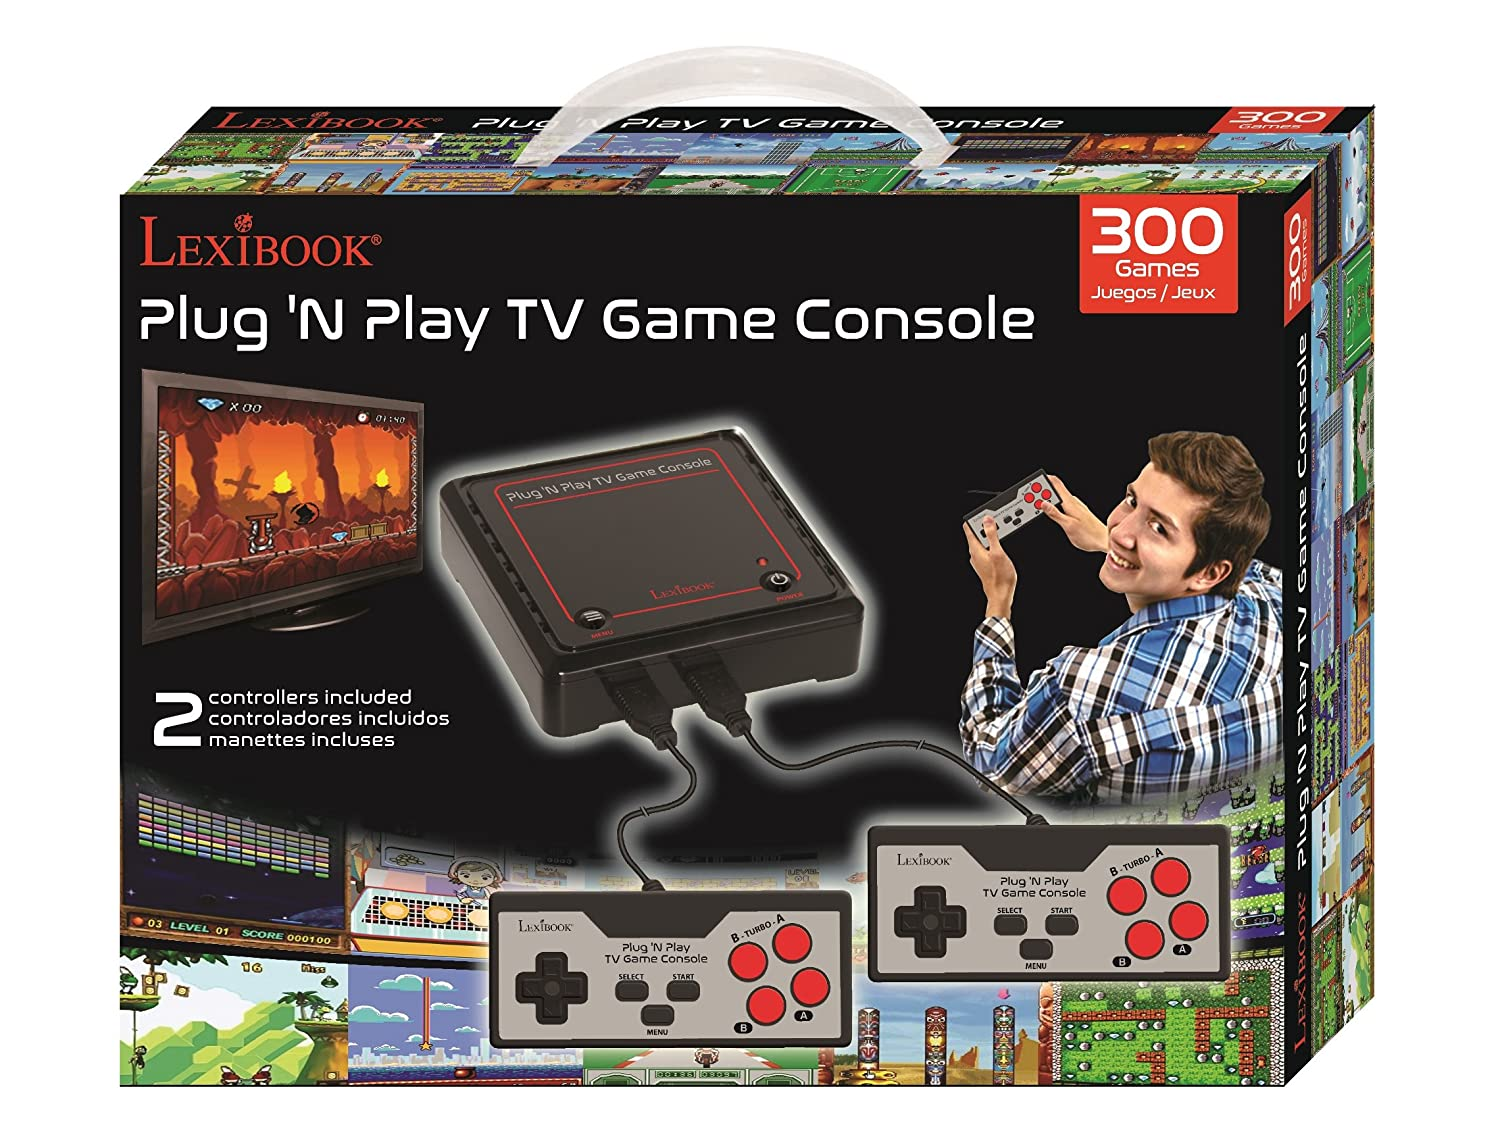 Amazon.com: Lexibook Retro game console, 2 controllers, 300 games, 1 AC/DC adapter, black/red, JG7800: Toys & Games